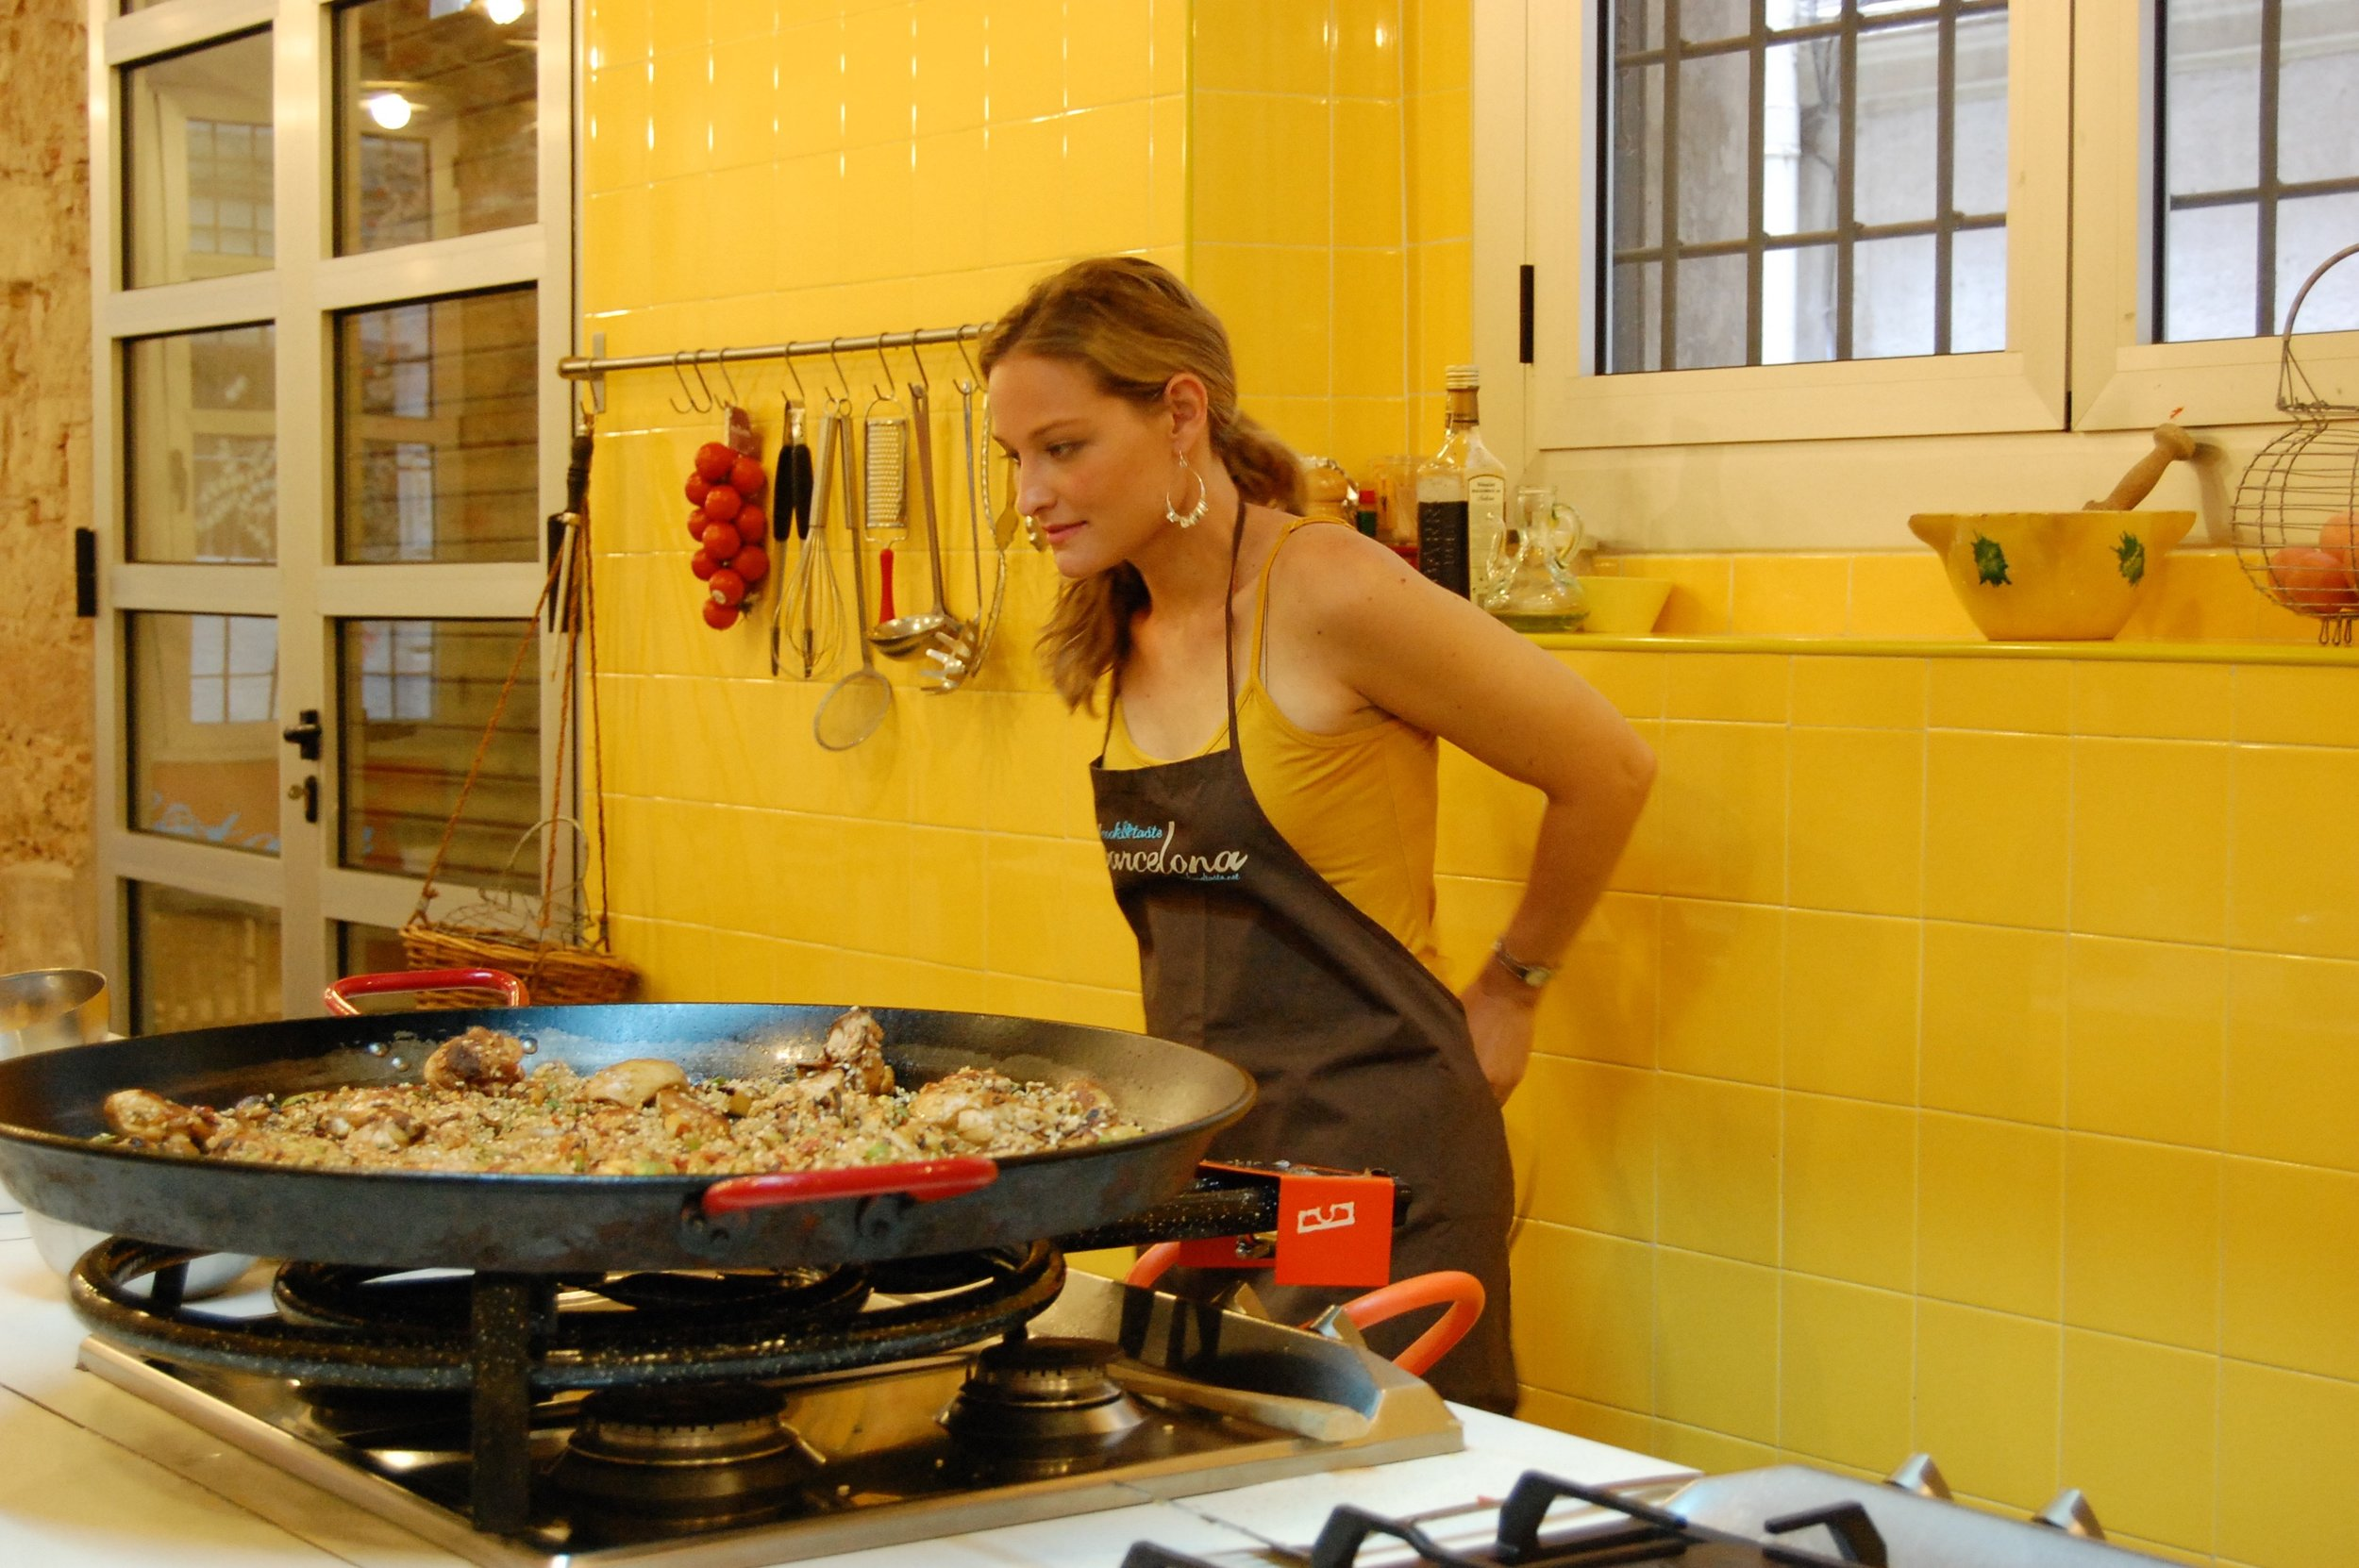 Me, in a cooking class in Barcelona. Ready to take a nose-dive into a giant pan of paella. I hadn't planned to match their yellow tile wall, but I love the fact that it almost makes me look naked under that apron. I get crazy on vacation.